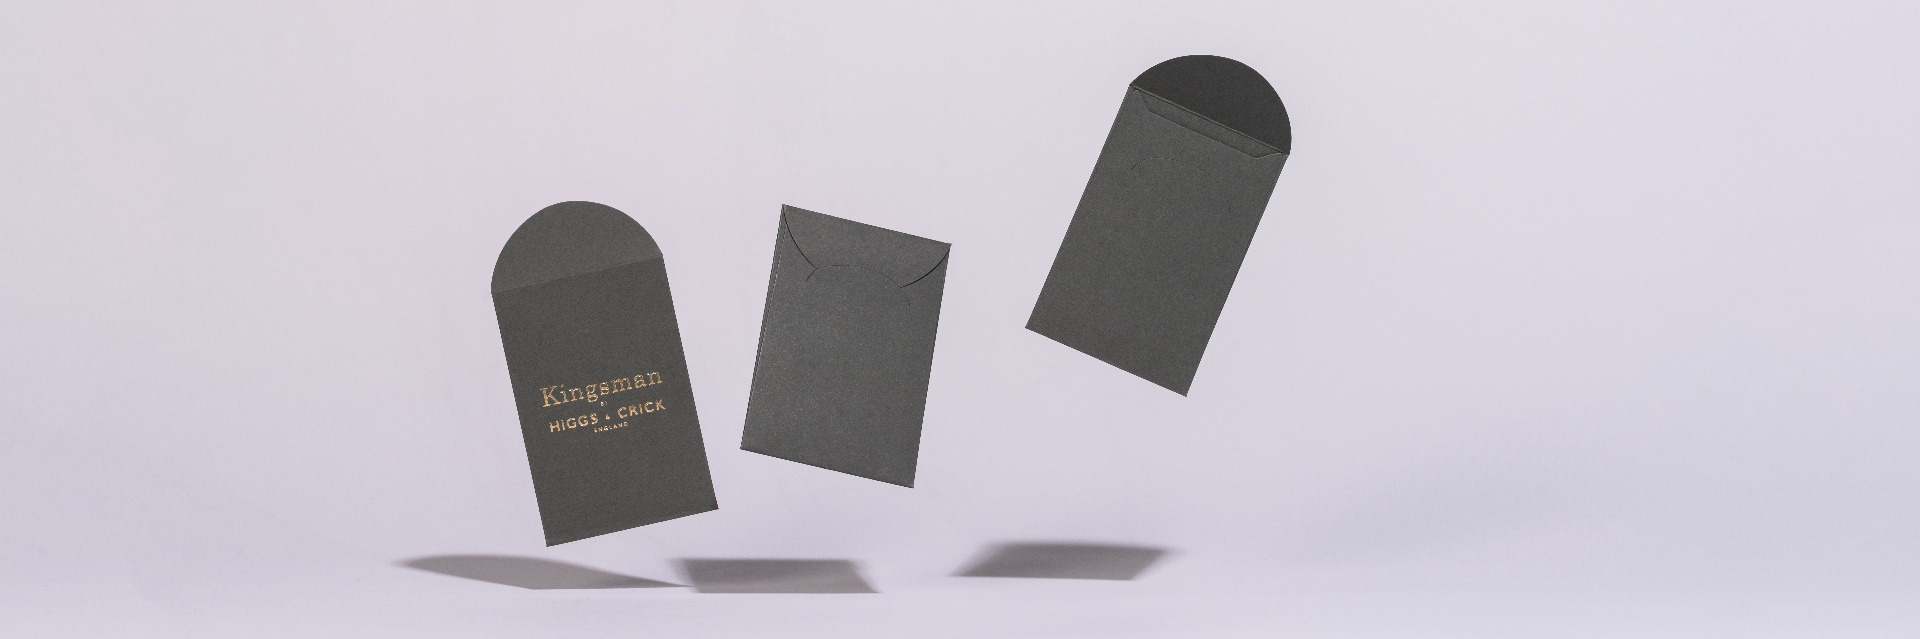 Higgs and Crick bespoke made envelopes